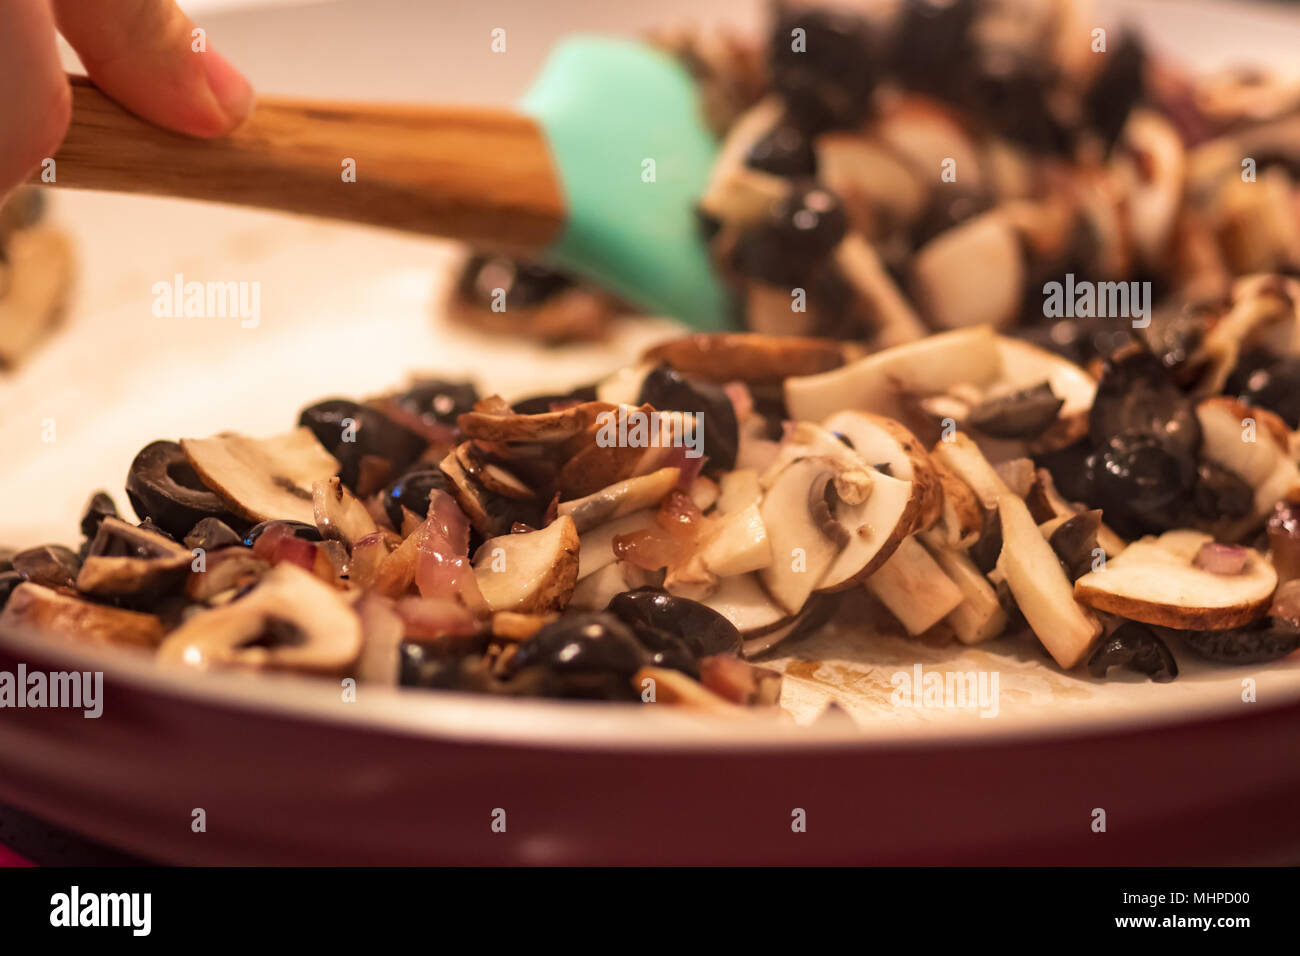 Hand using spatula to stir chopped black olives, red onions and sliced mushrooms in a frying pan. - Stock Image